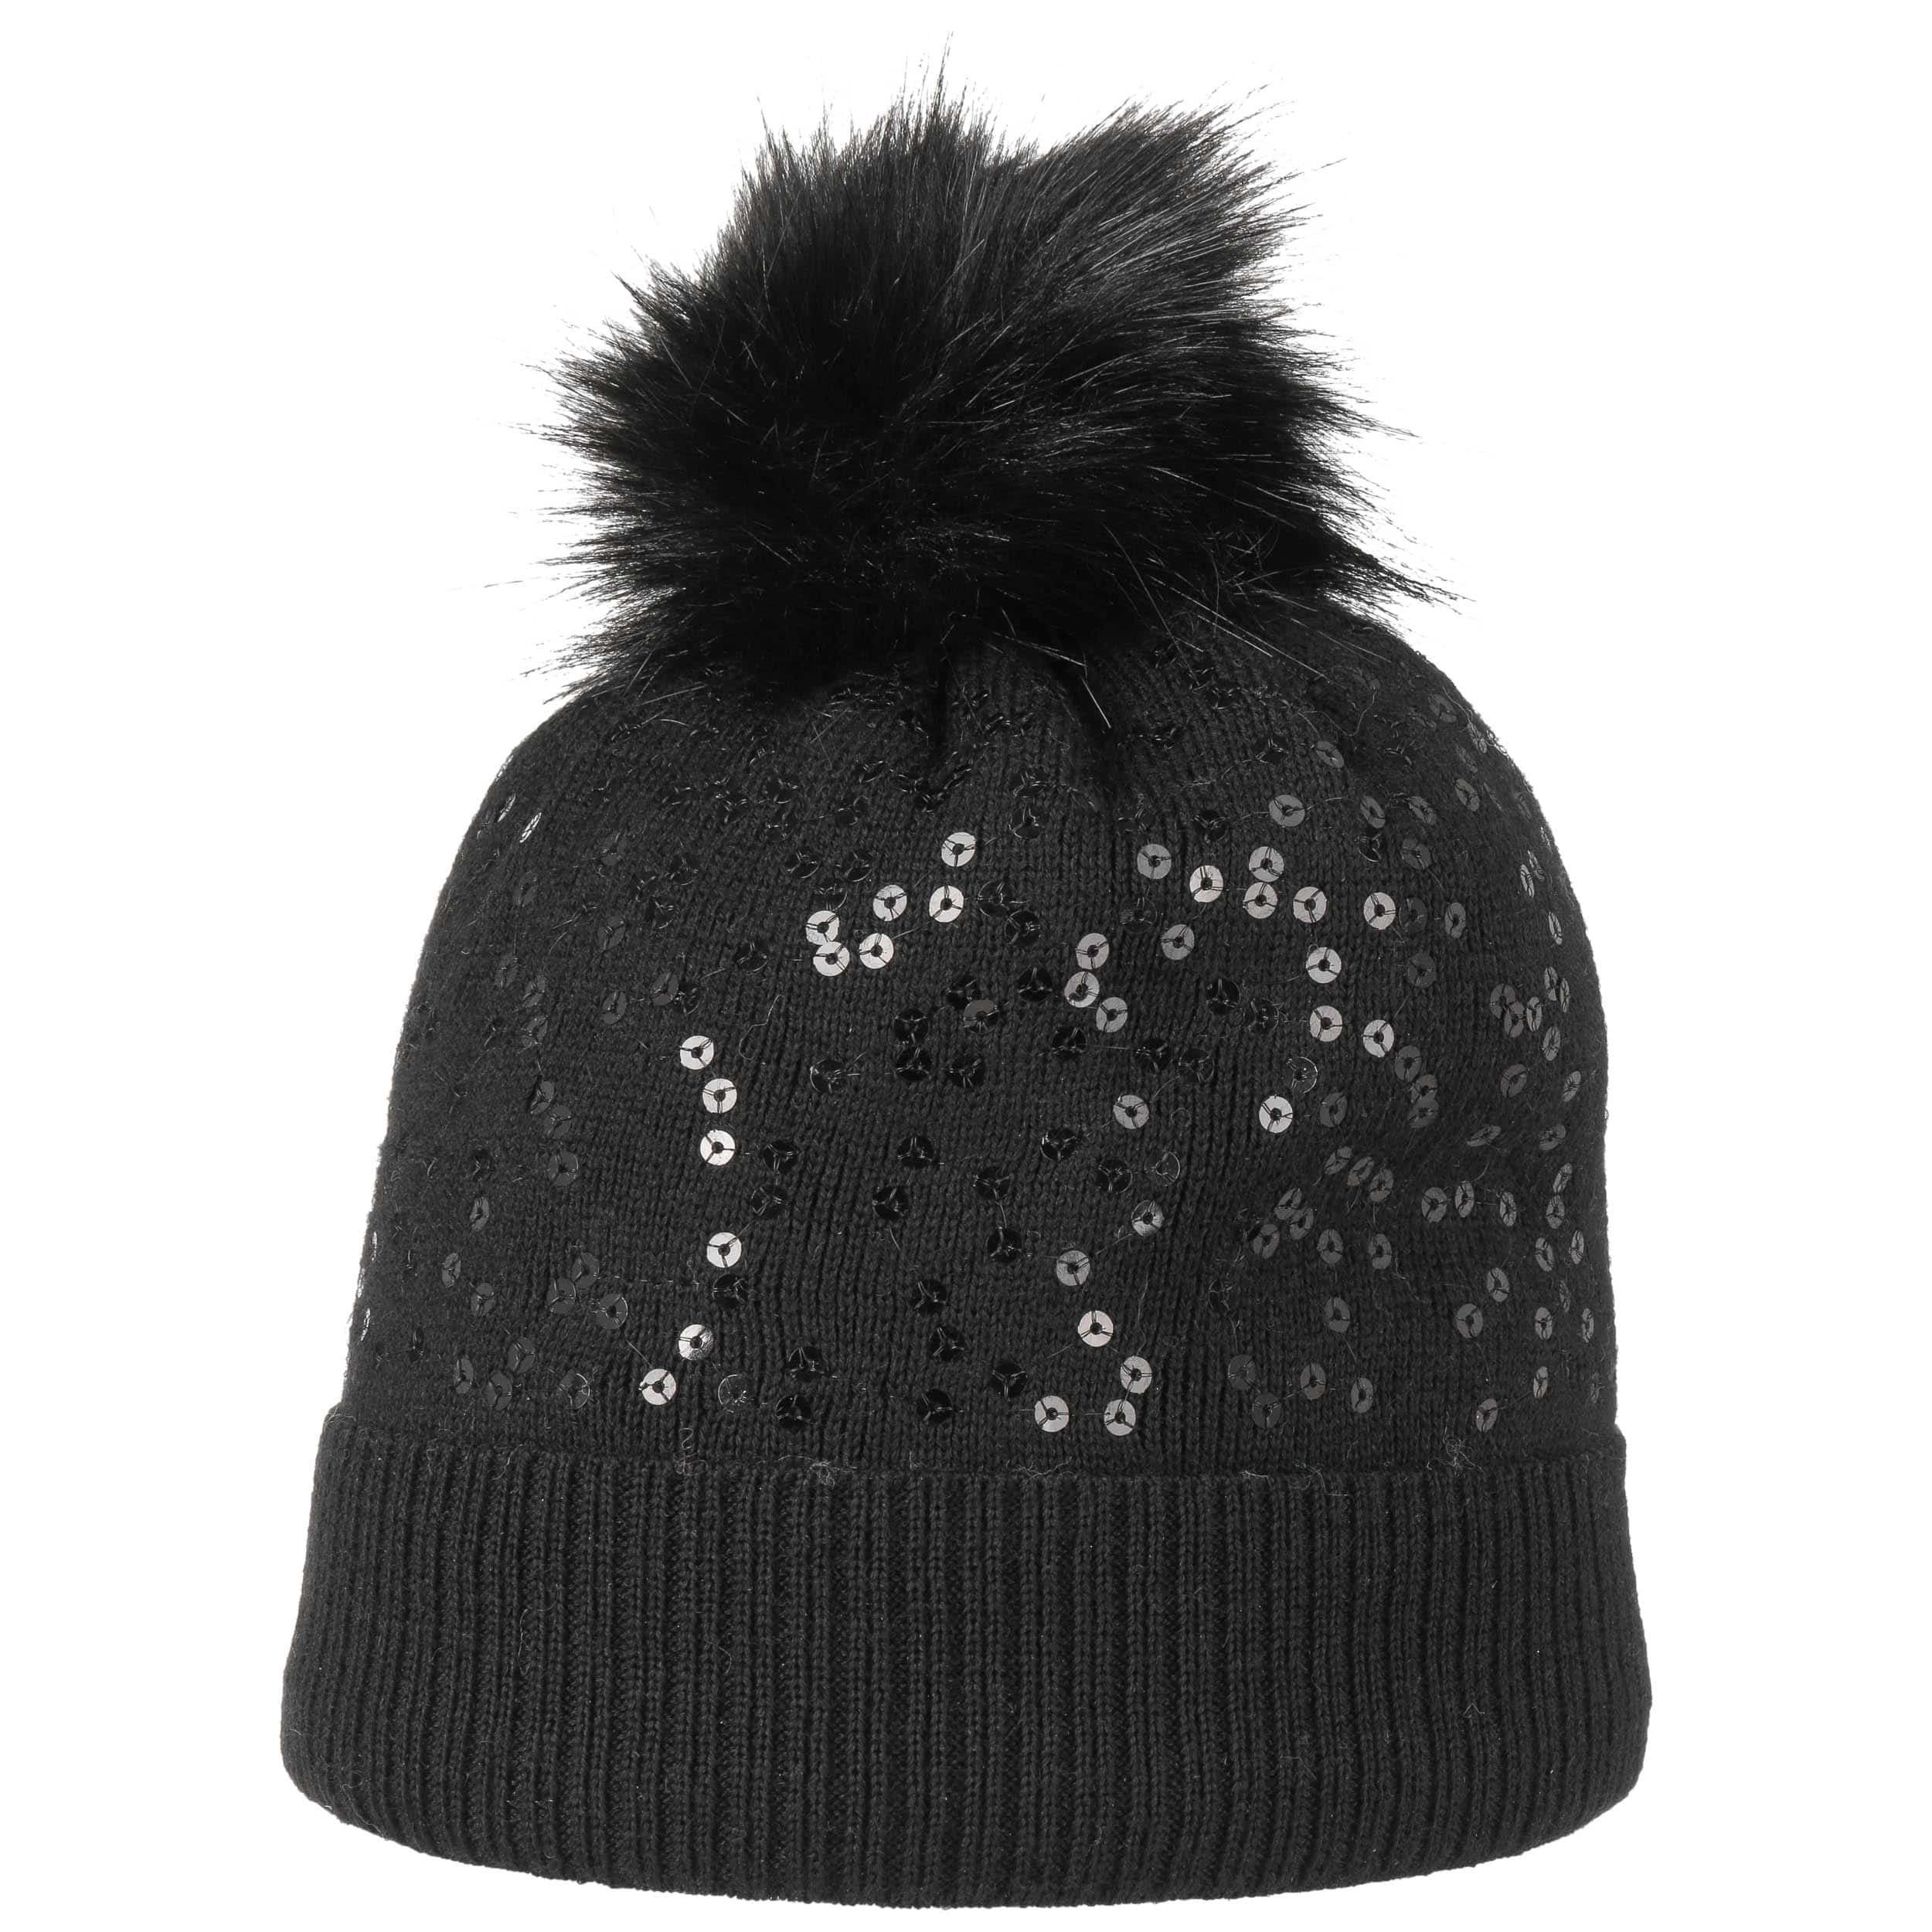 ff0c67aa593 ... Pompom Hat with Sequins by maximo - black 3